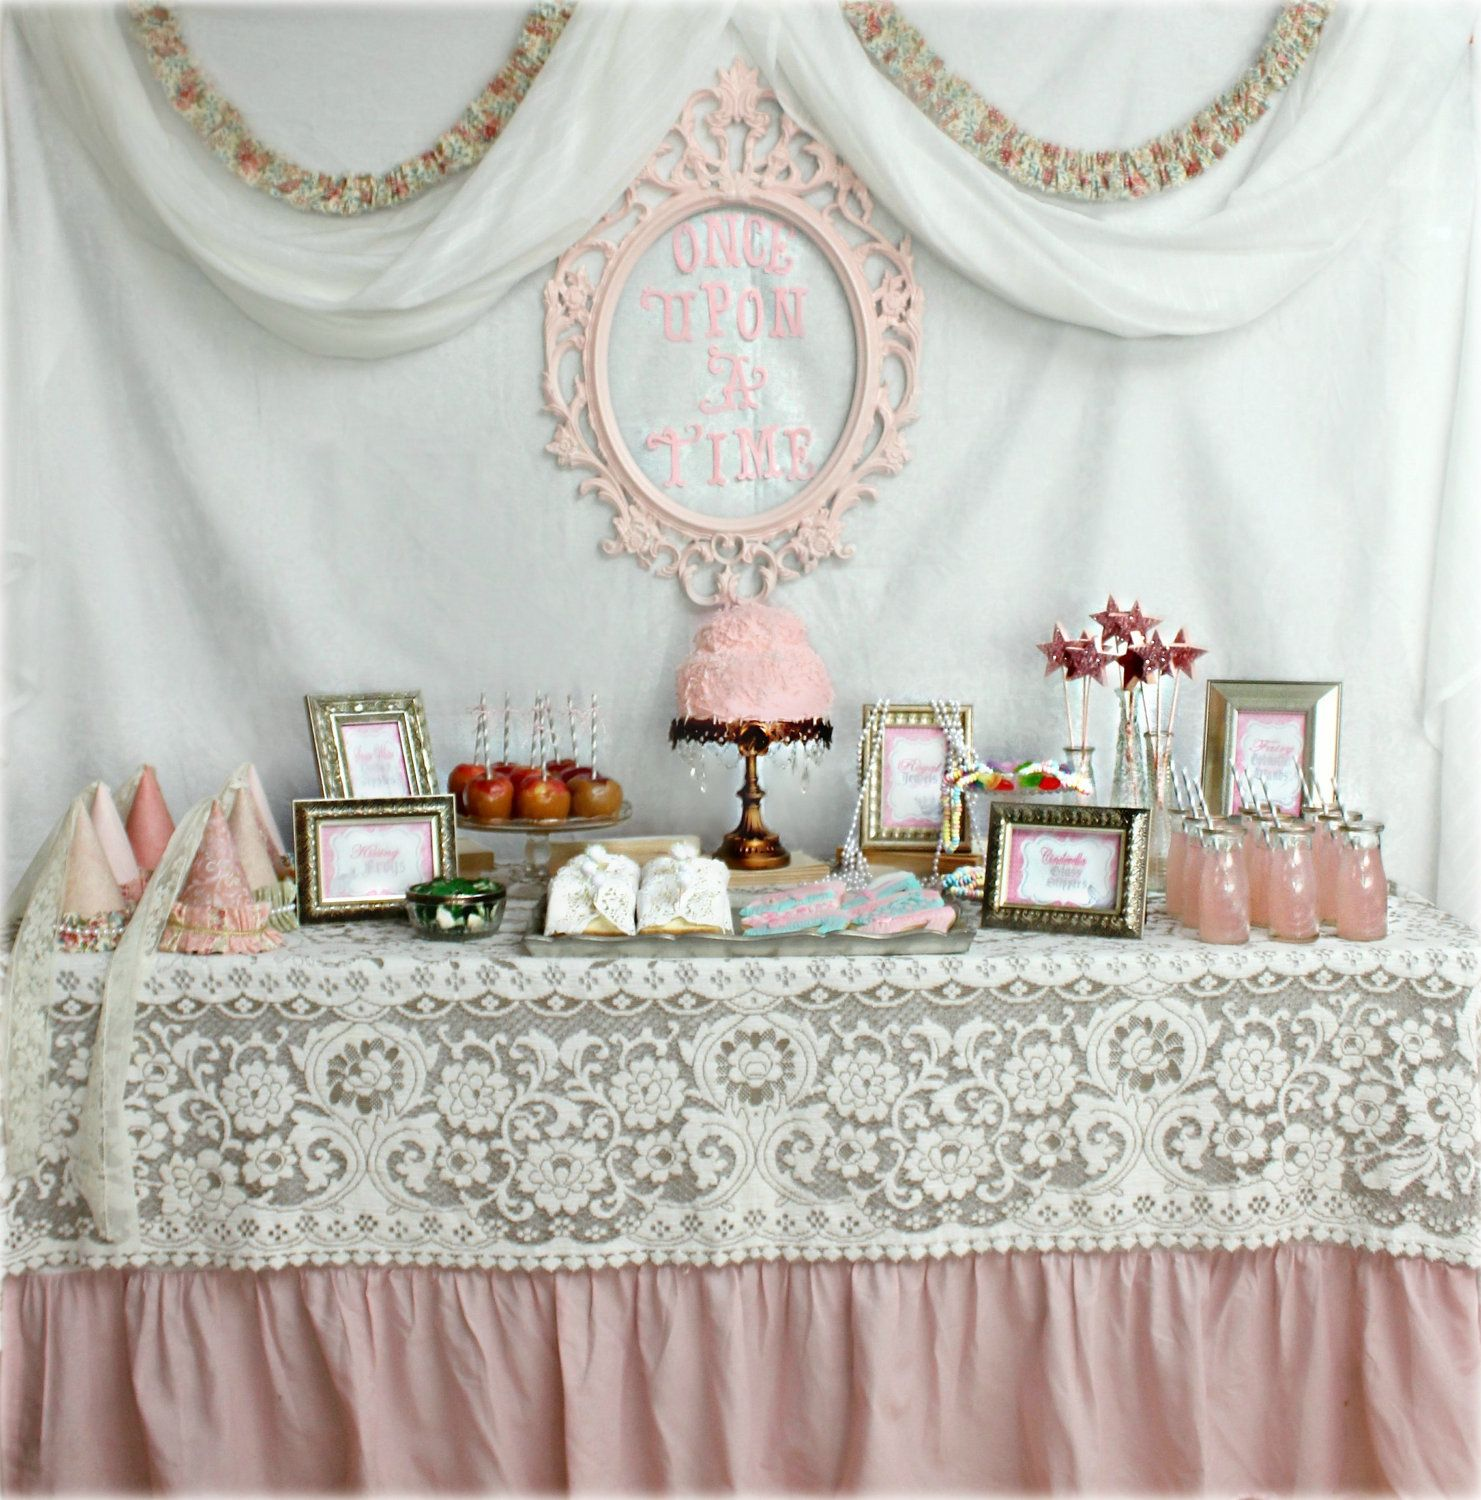 Like the lace on the pink tablecloth | Princess Tea party ideas ...